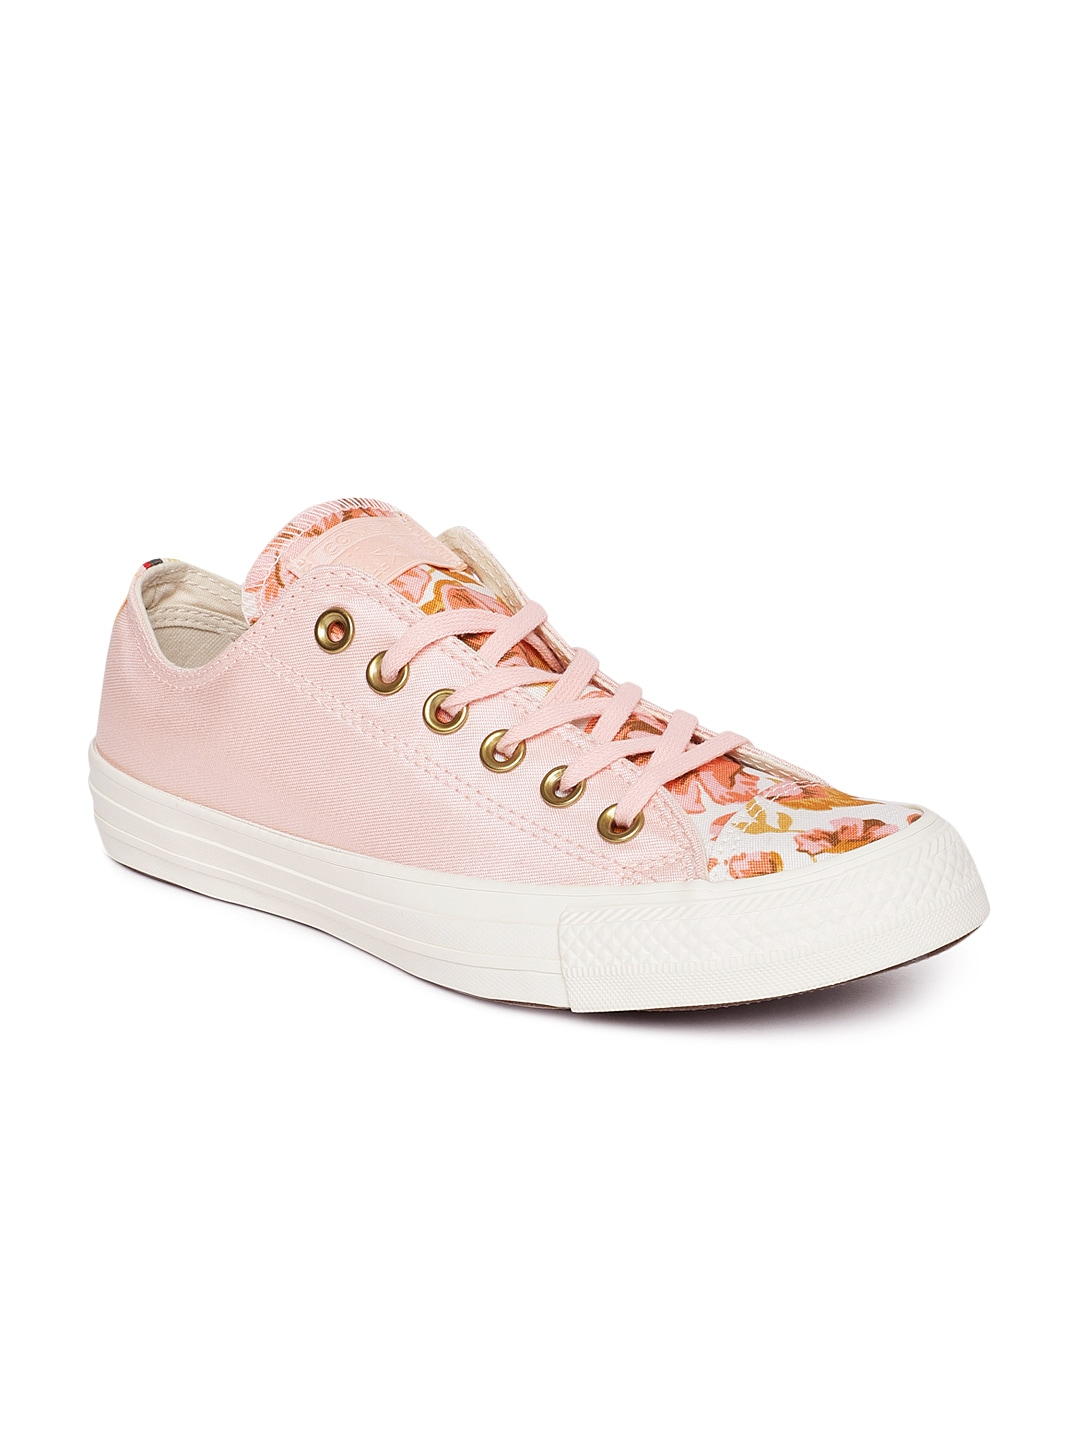 ab65ef0b3fe0 Converse Shoes - Buy Converse Canvas Shoes   Sneakers Online